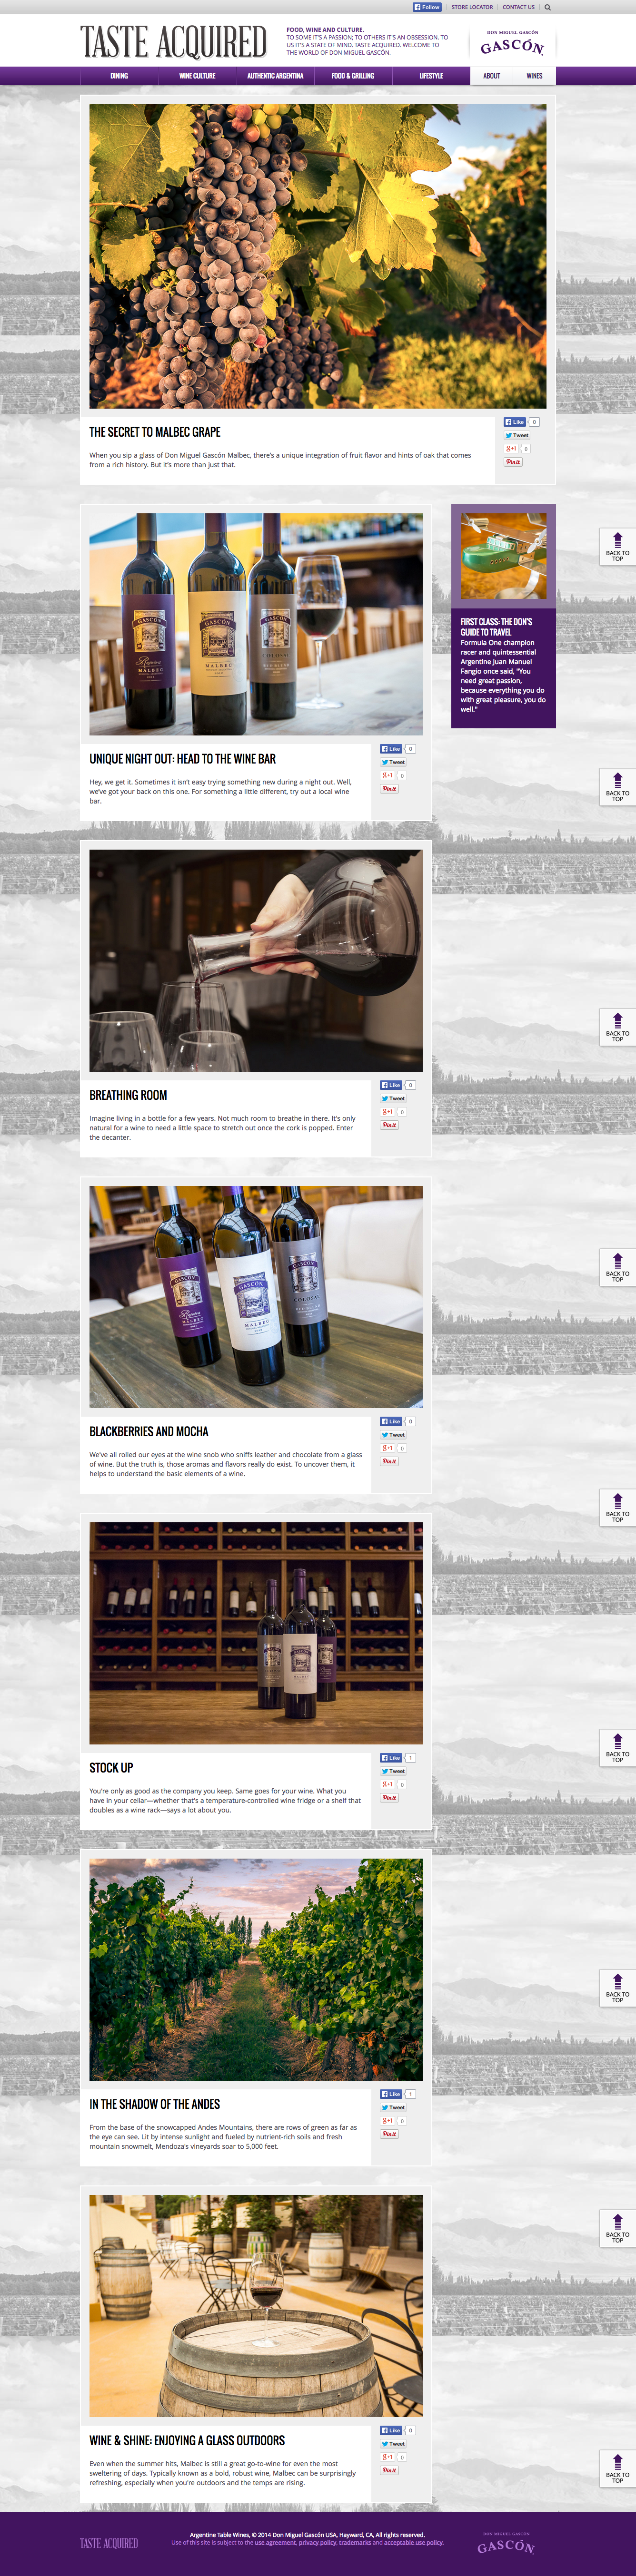 screencapture-www-gasconwine-com-Wine-Culture-index-php.png